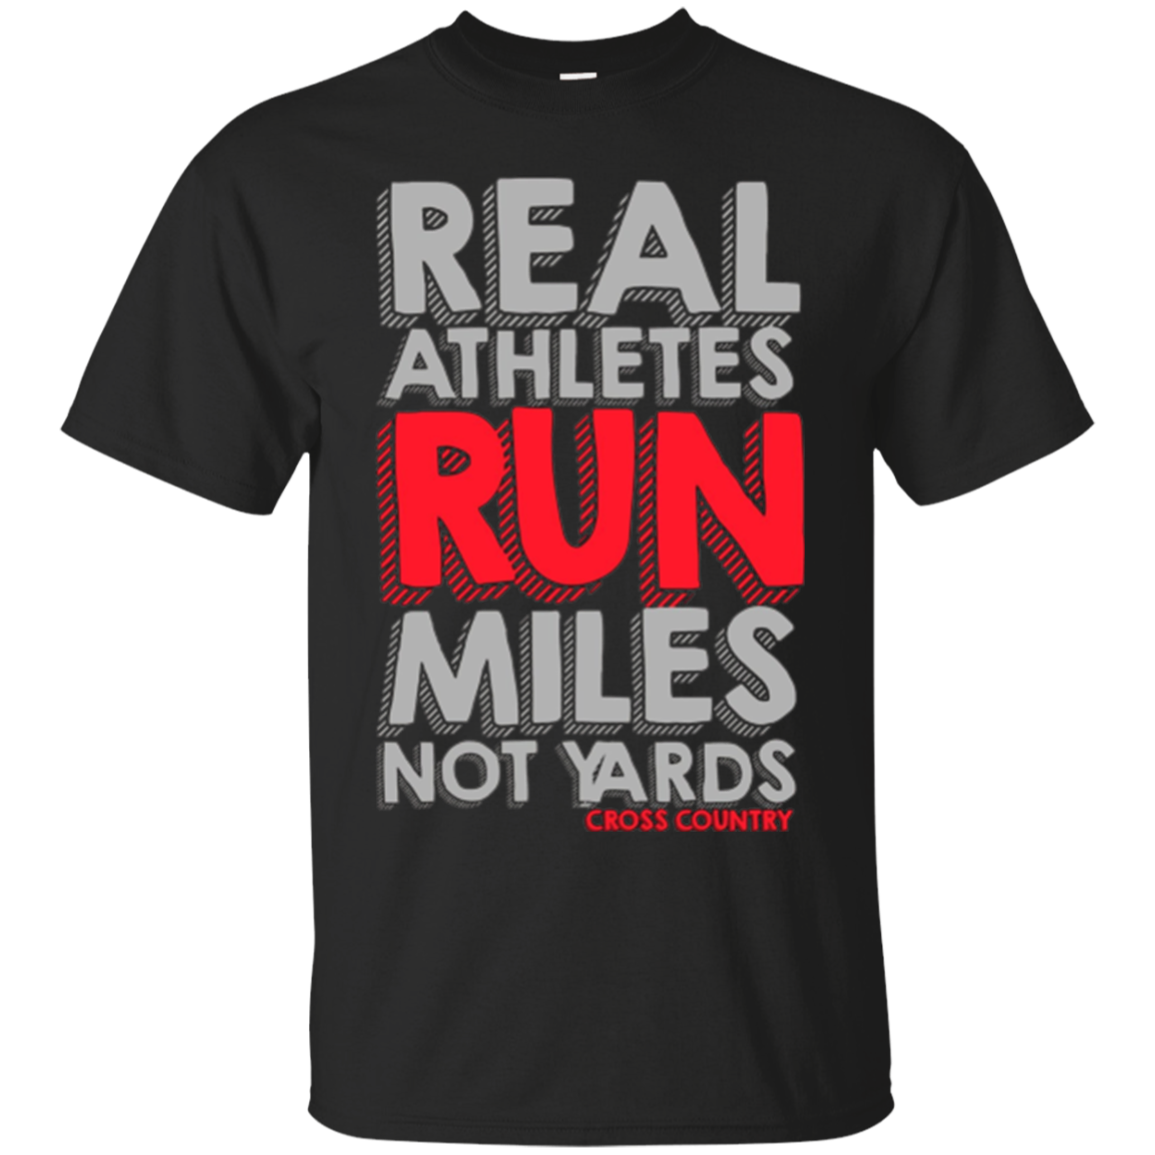 Cross Country: Real Athletes Run Miles not Yards T-Shirt.